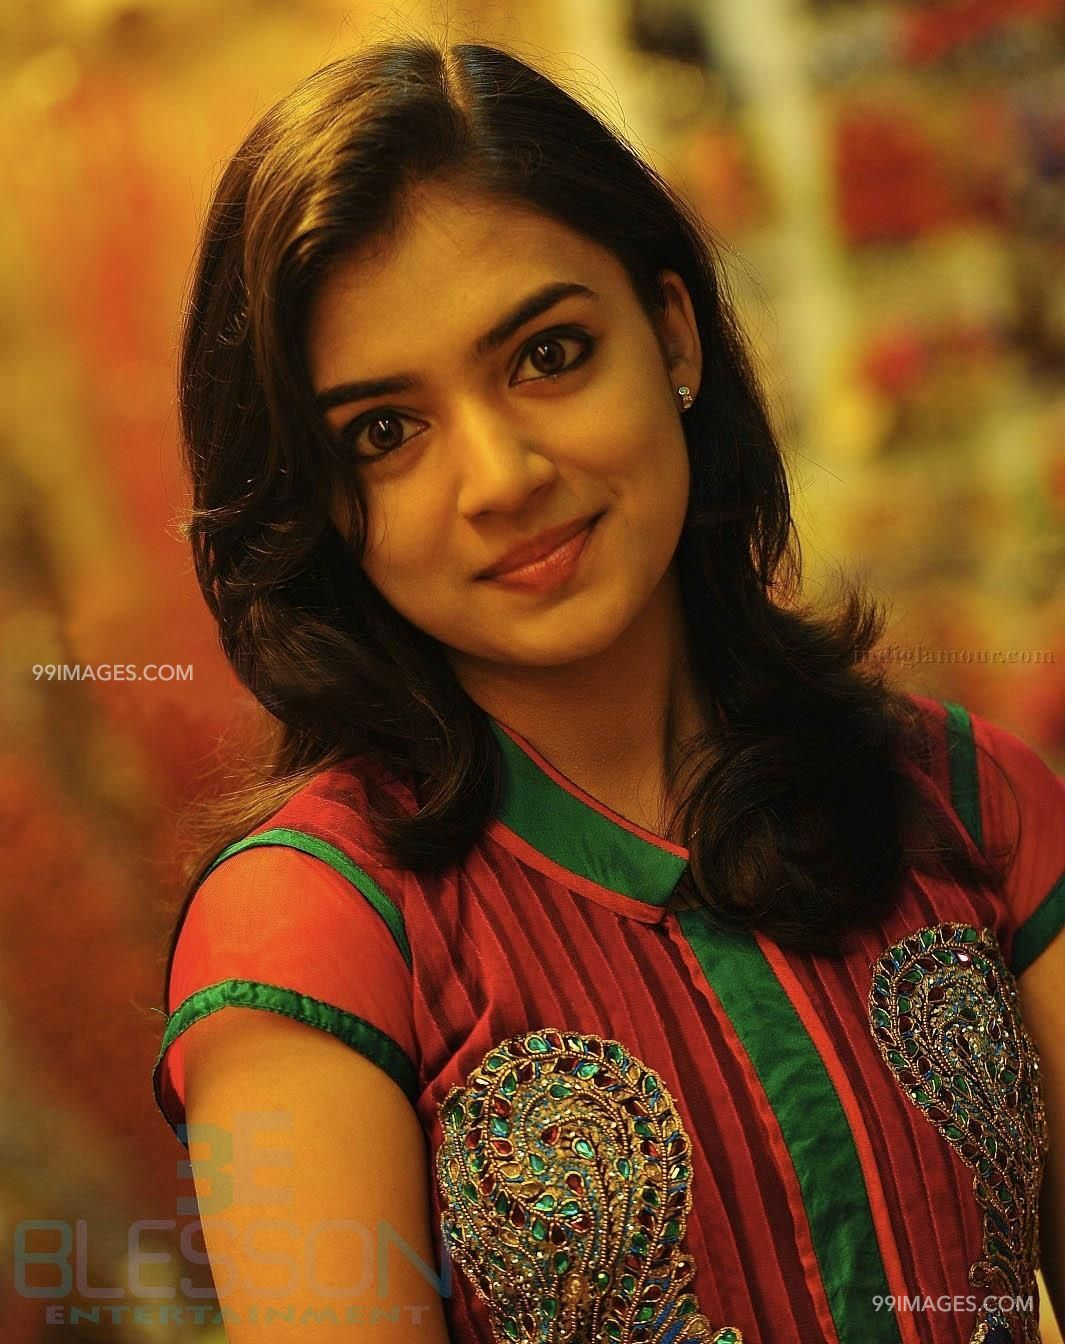 Nazriya Nazim Beautiful HD Photos / Wallpapers, WhatsApp DP Download (1080p) (6532) - Nazriya Nazim